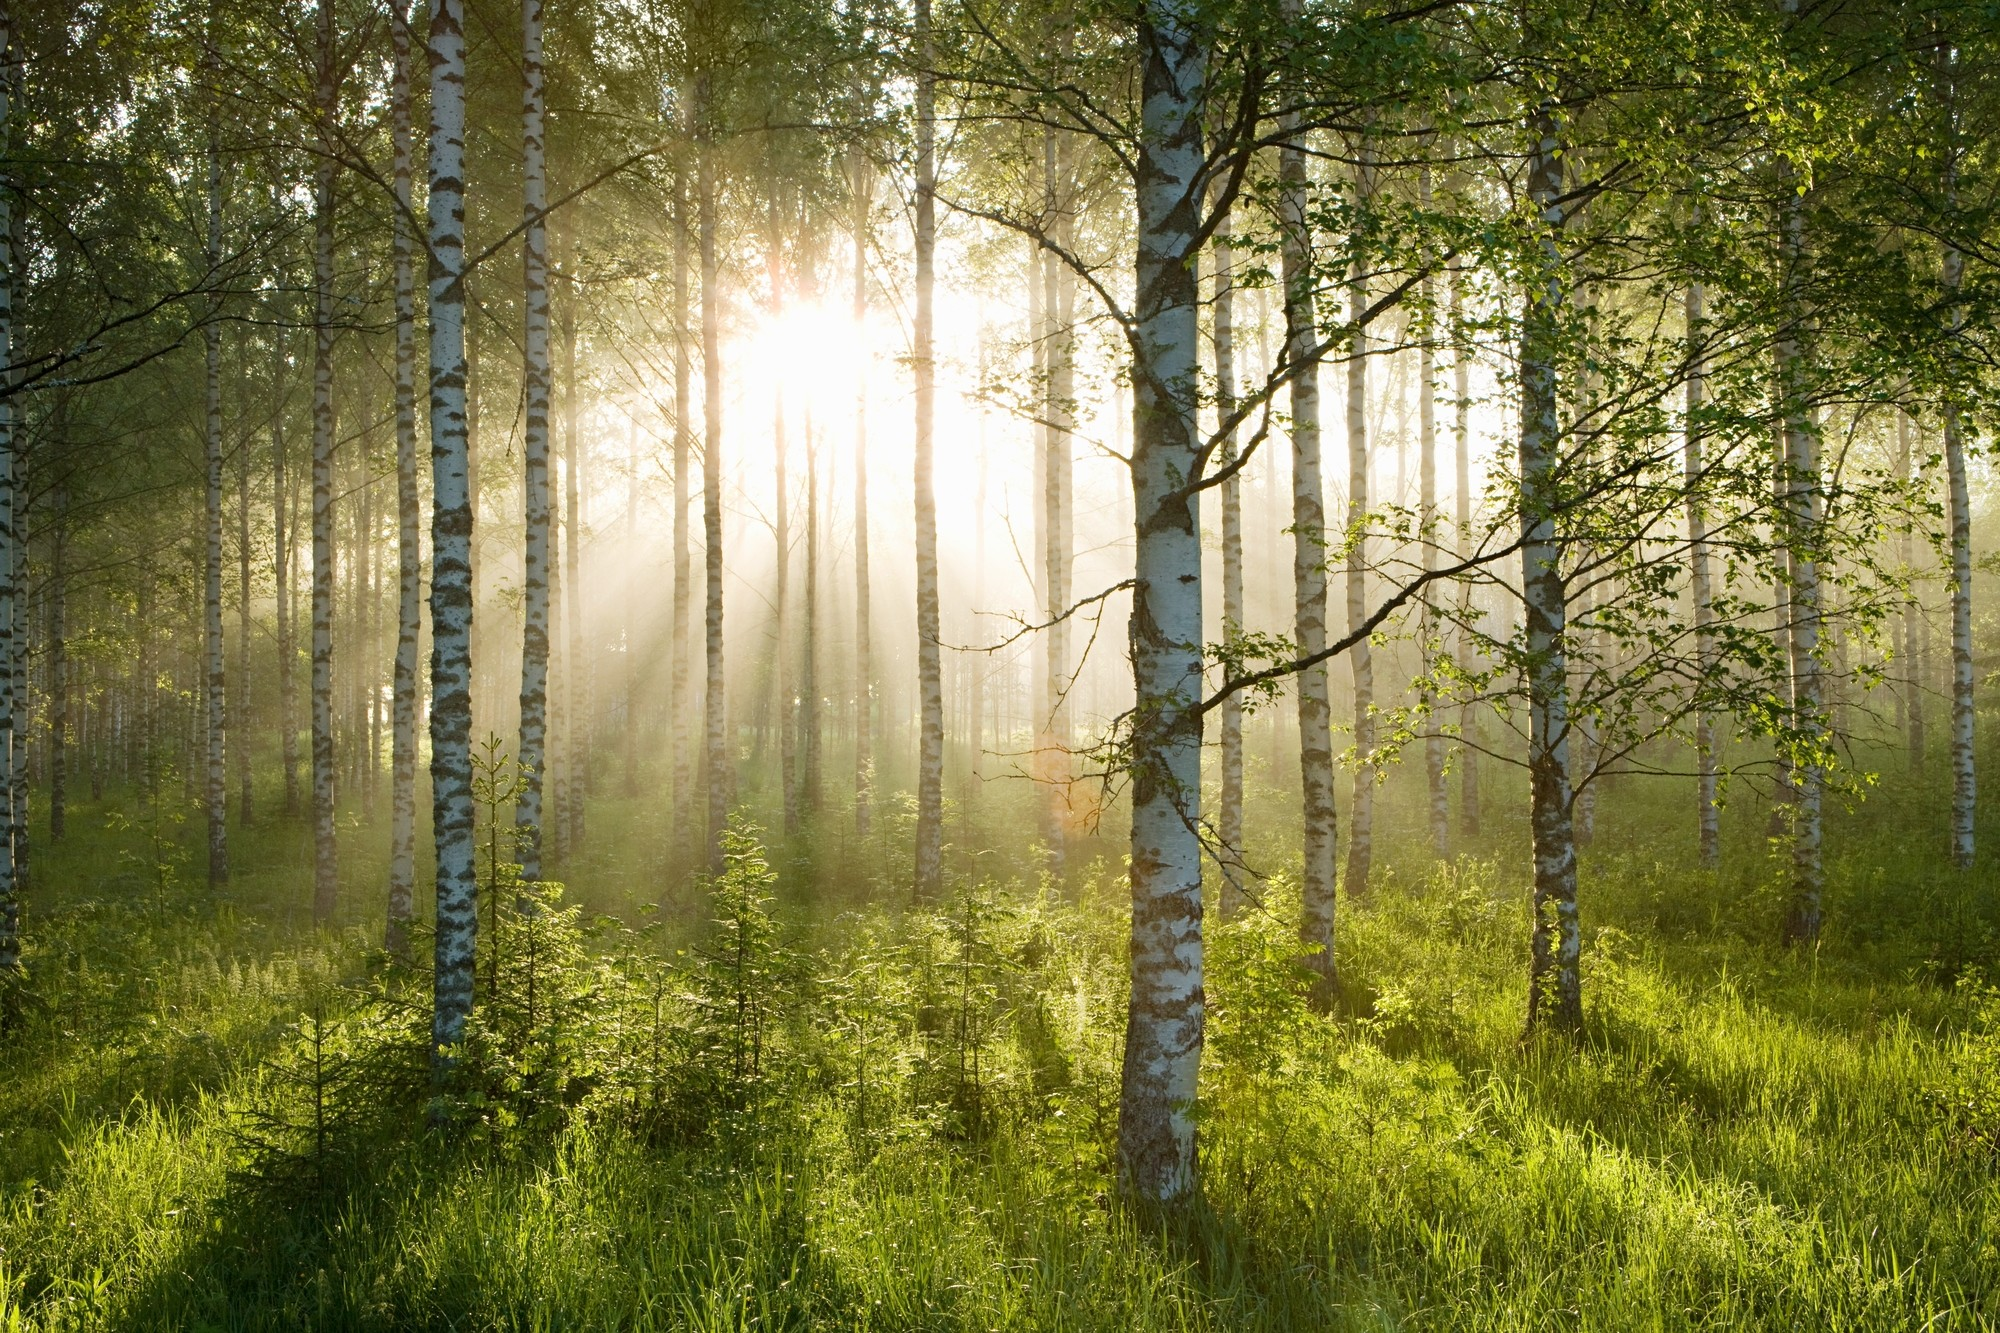 2000x1333 Birch Forest Sunlight Wallpaper